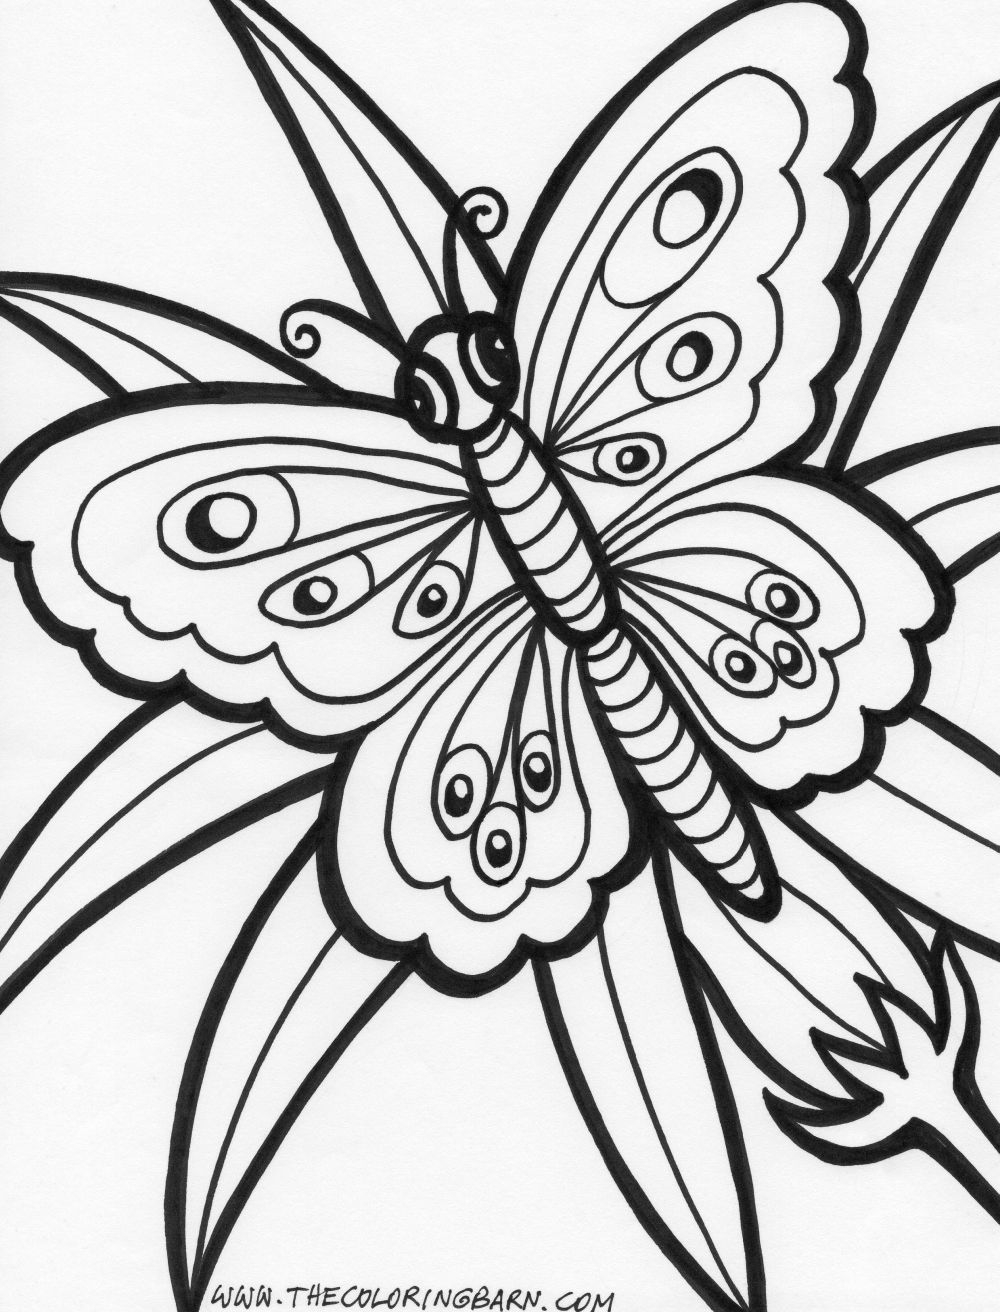 Coloring Pages For Kids To Print Out Printable Coloring Pages Free Download Best Printable Coloring